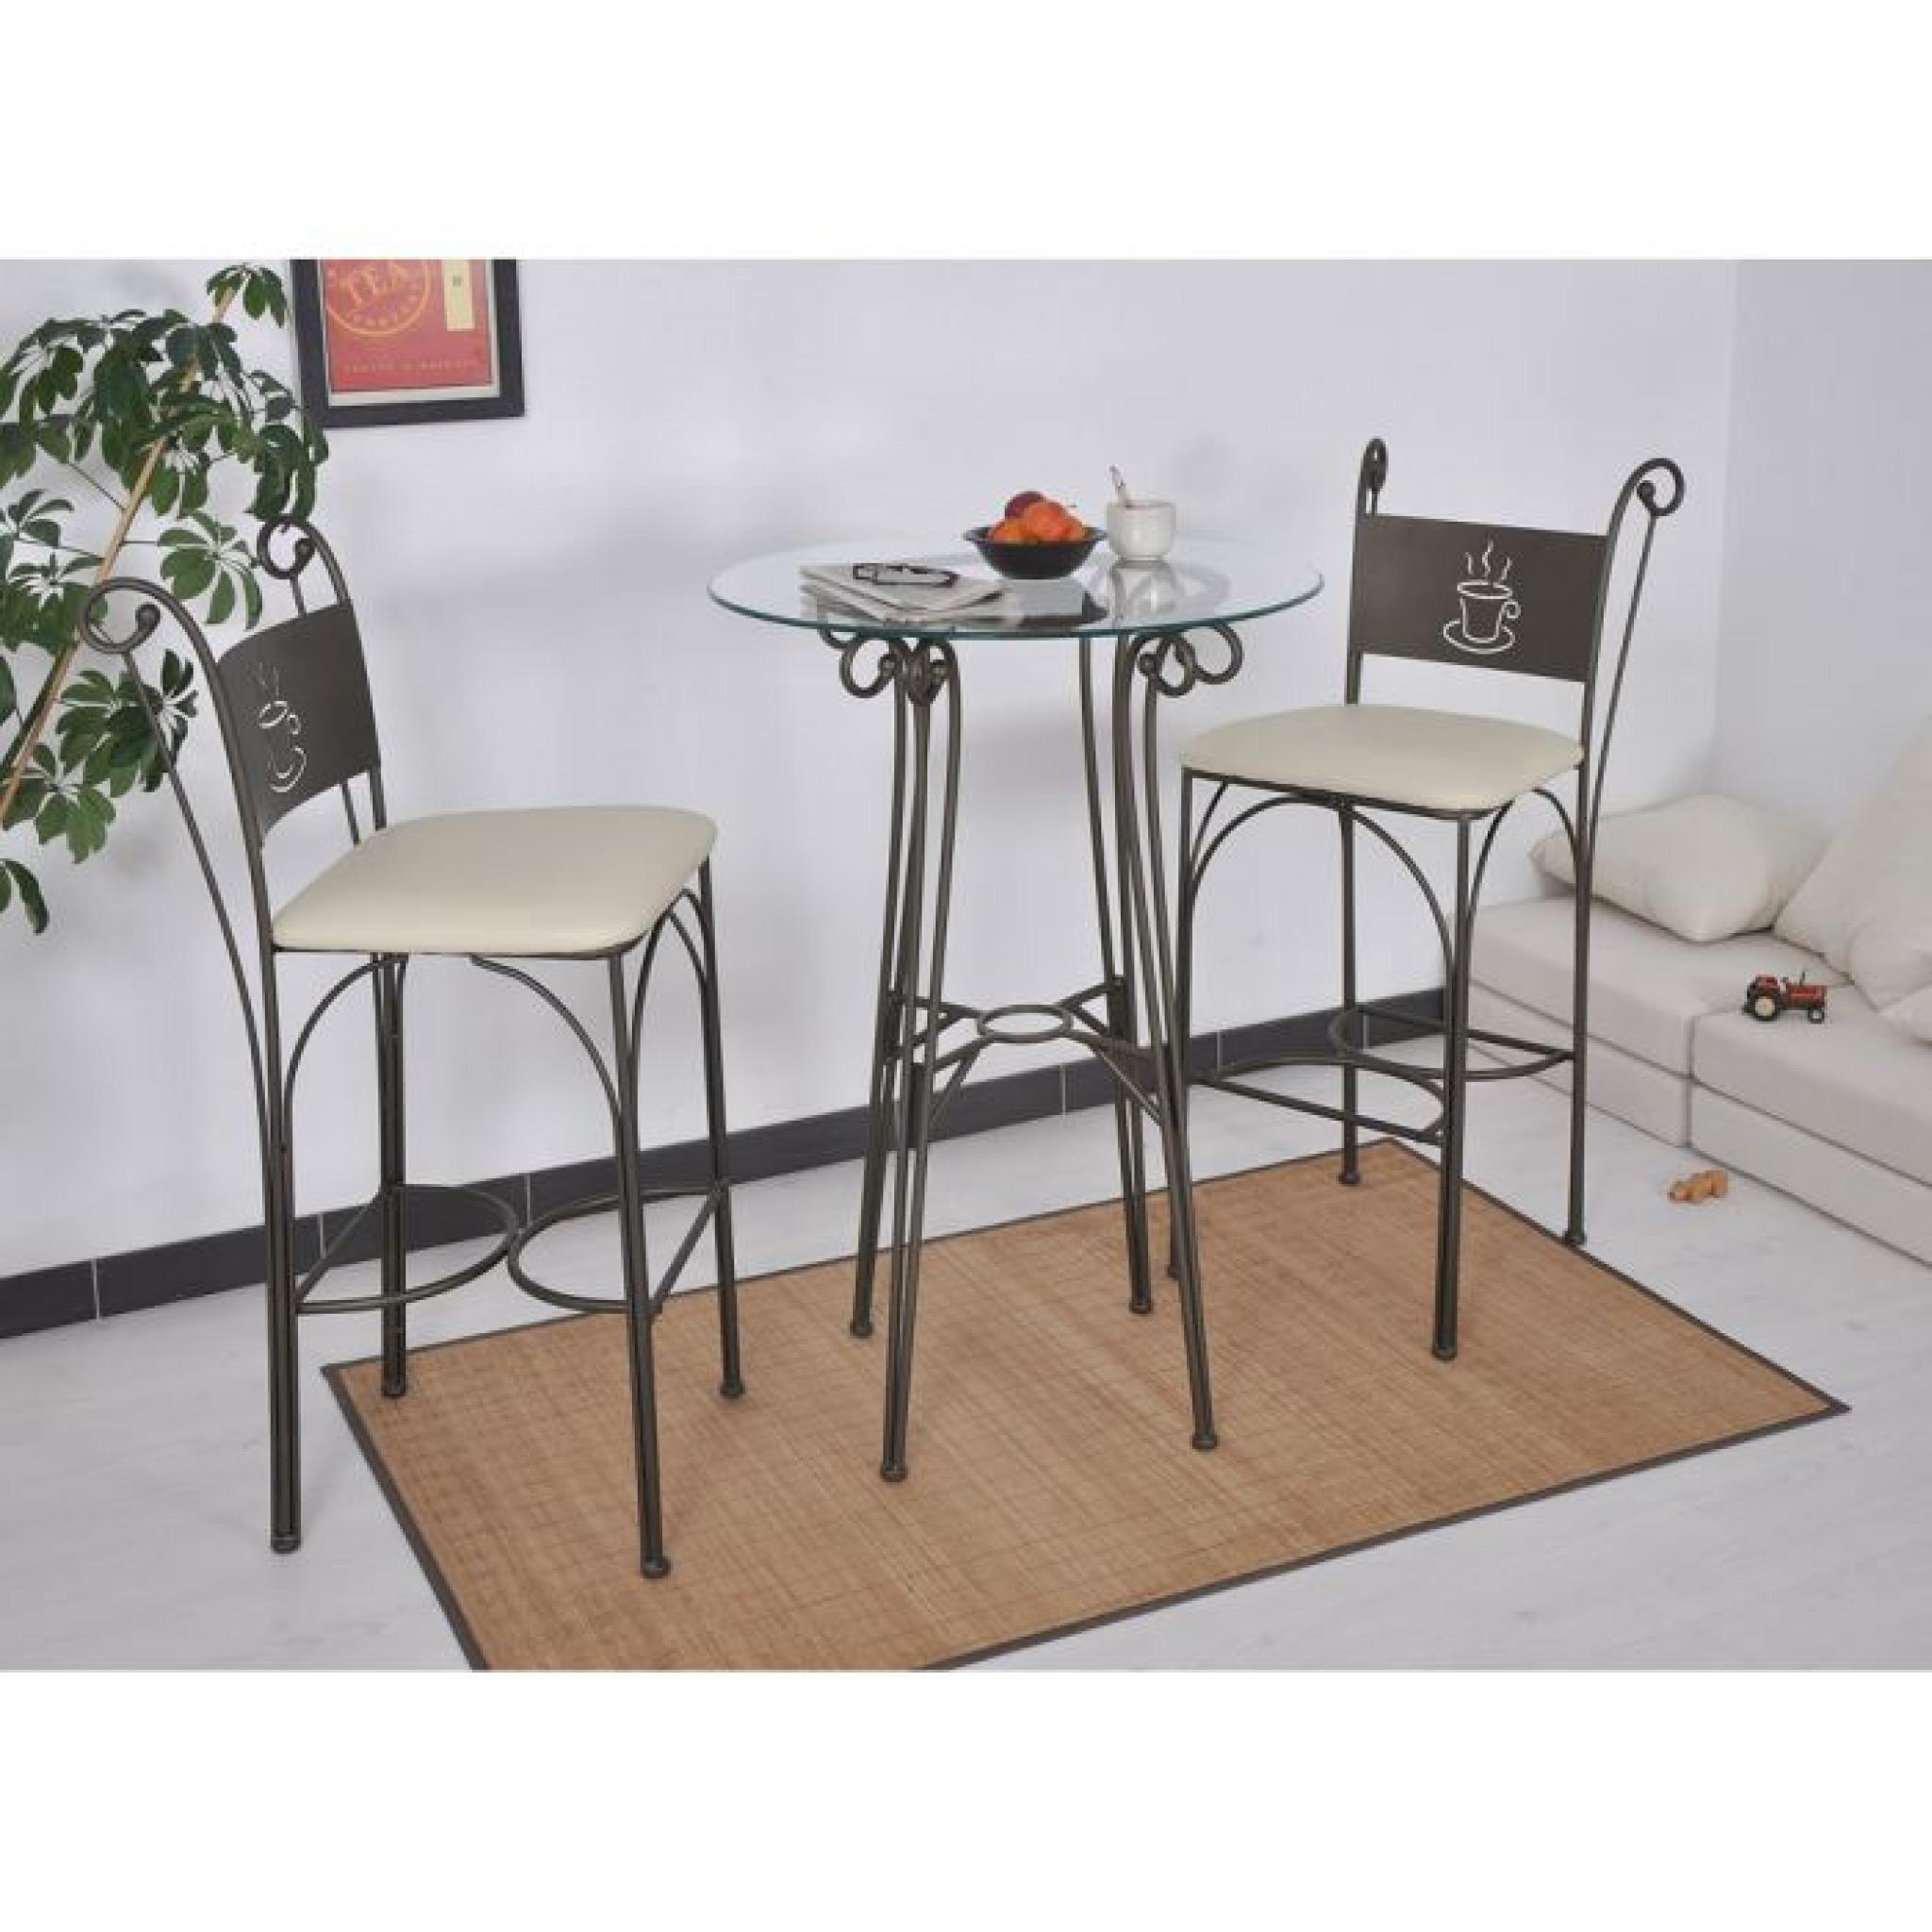 table haute ronde gringo achat vente table salle a. Black Bedroom Furniture Sets. Home Design Ideas